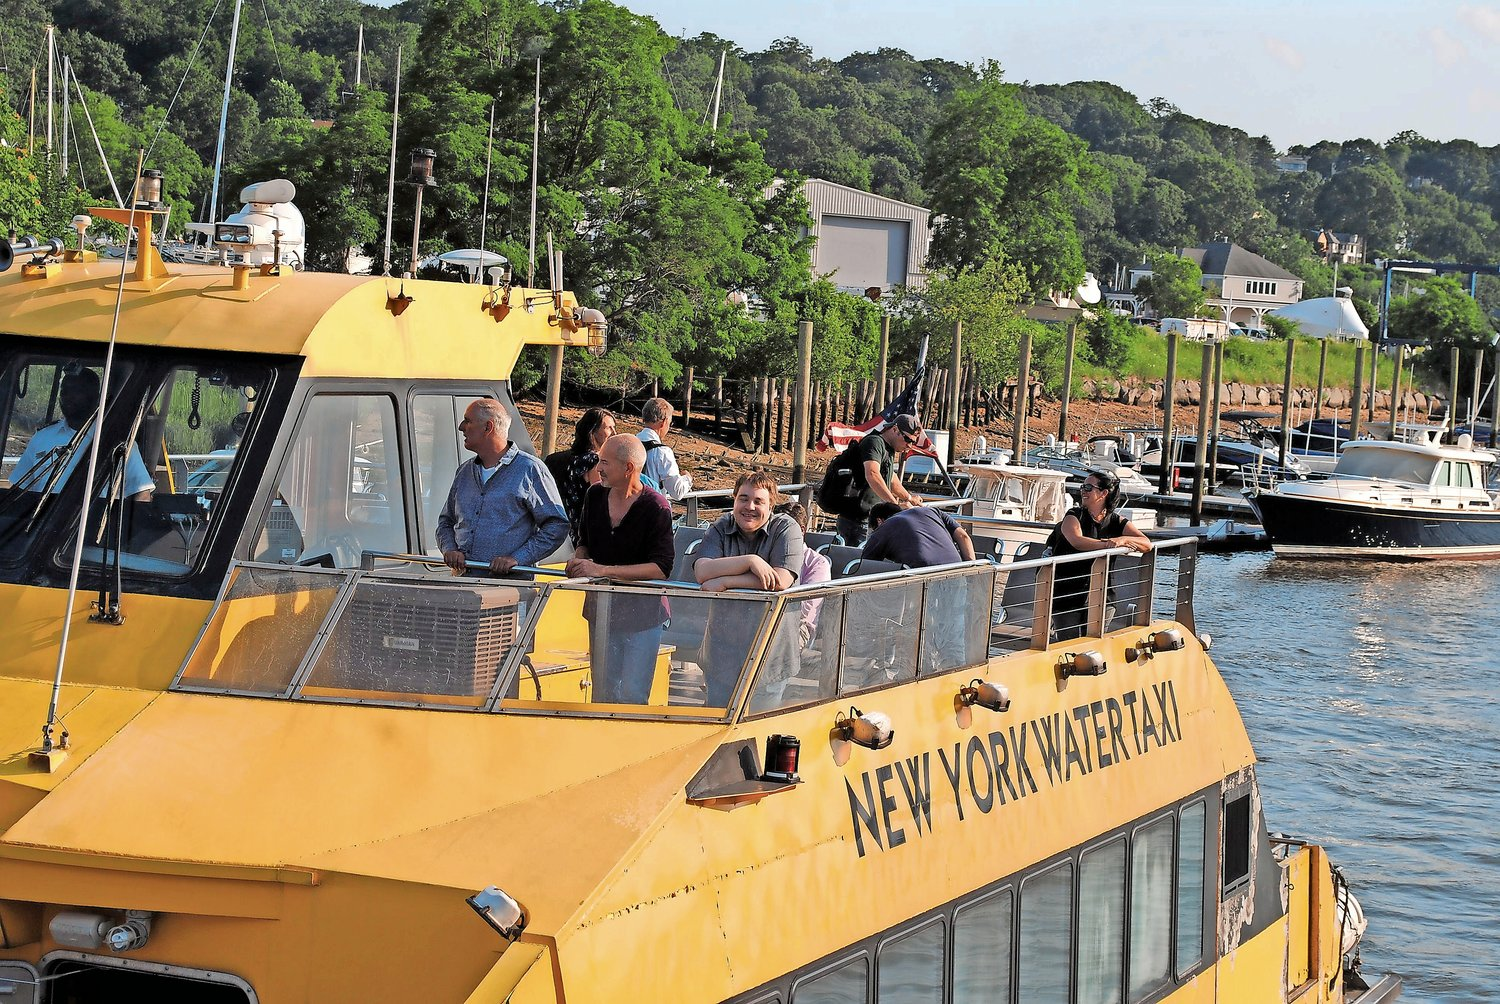 Mayor Tim Tenke met with representatives of two ferry operators to discuss a potential partnership once the Glen Cove ferry is up and running.